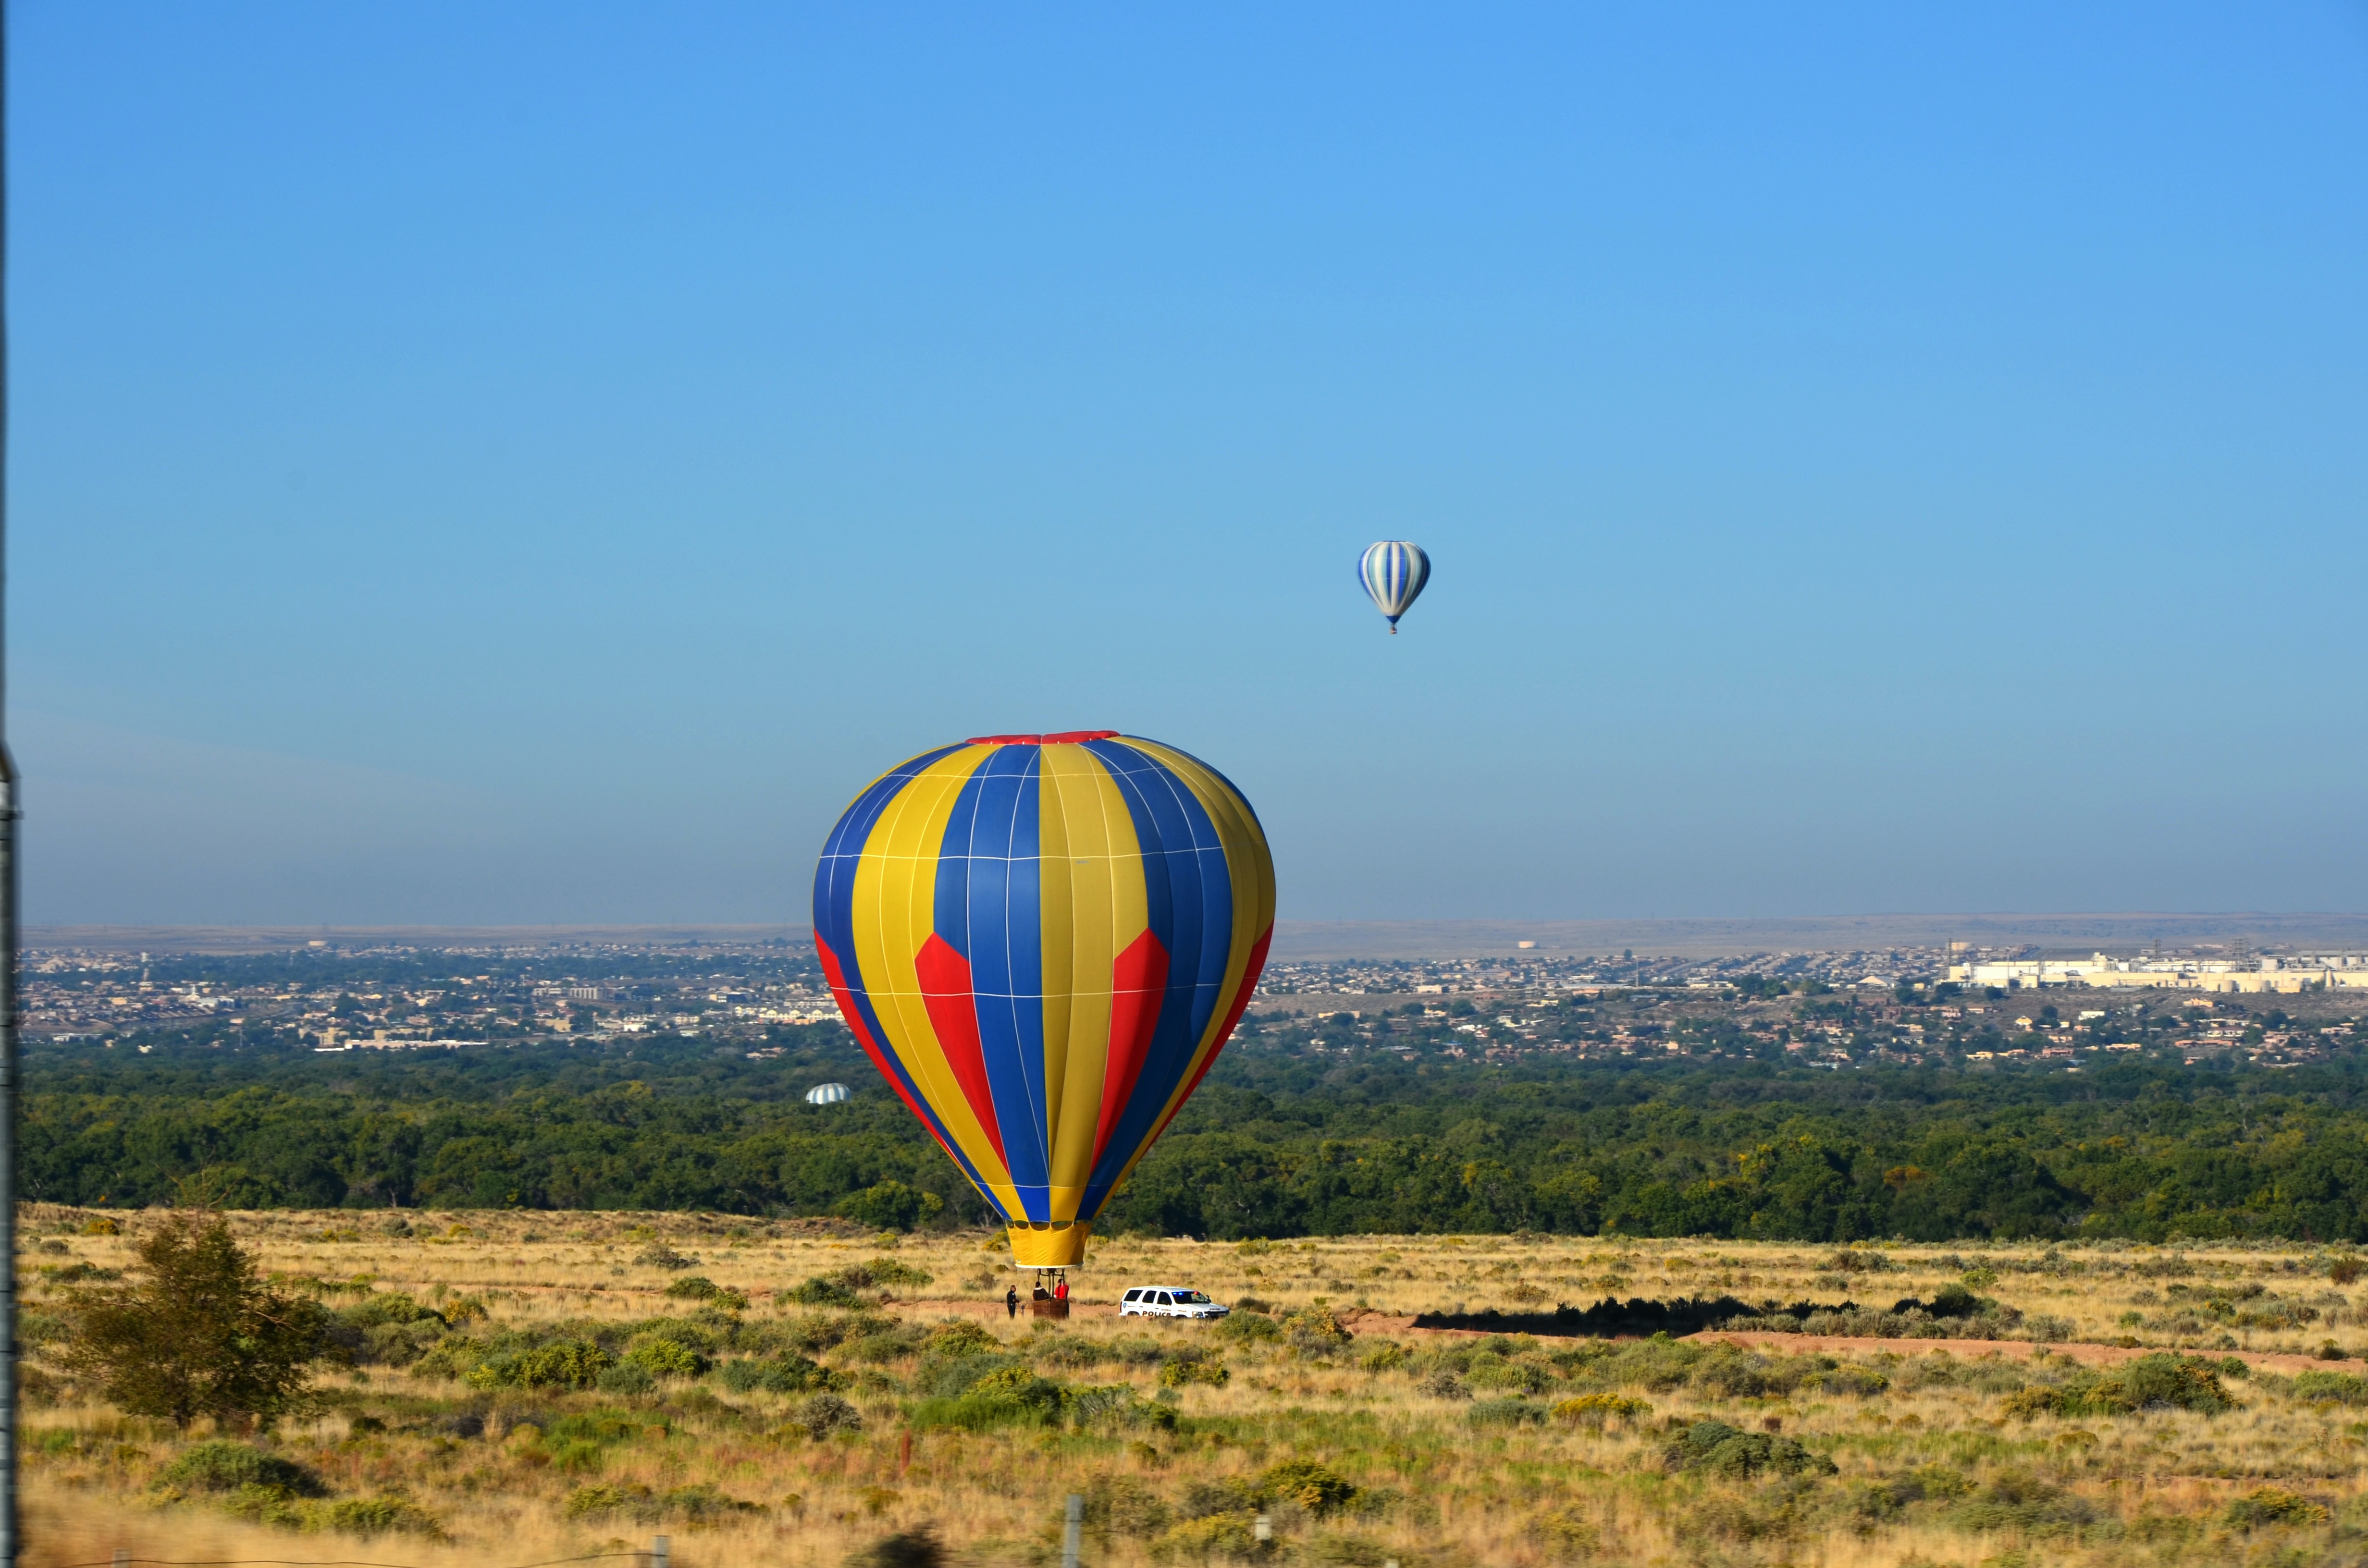 Red, blue, yellow hot air balloon resting on ground with another hot air balloon in distance